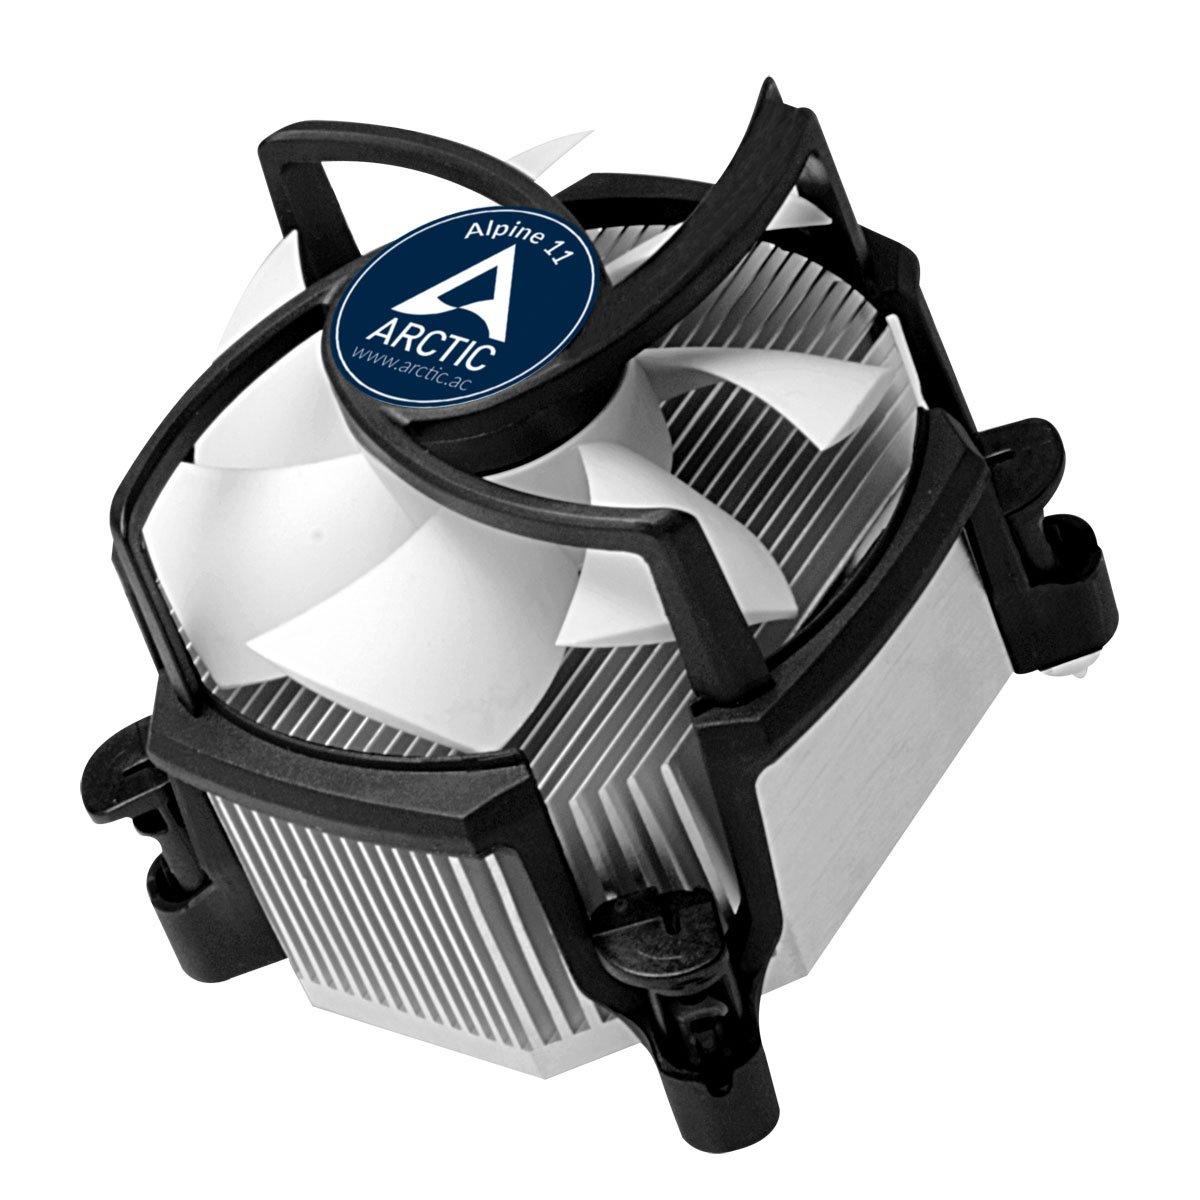 Arctic Alpine 11   Cpu Cooler For Intel Sockets, Through 92 Mm Pwm Fan Up To 95 Watt Cooling Performance   With Pre Applied Mx 2 Thermal Compound   Simple Mounting System by Arctic